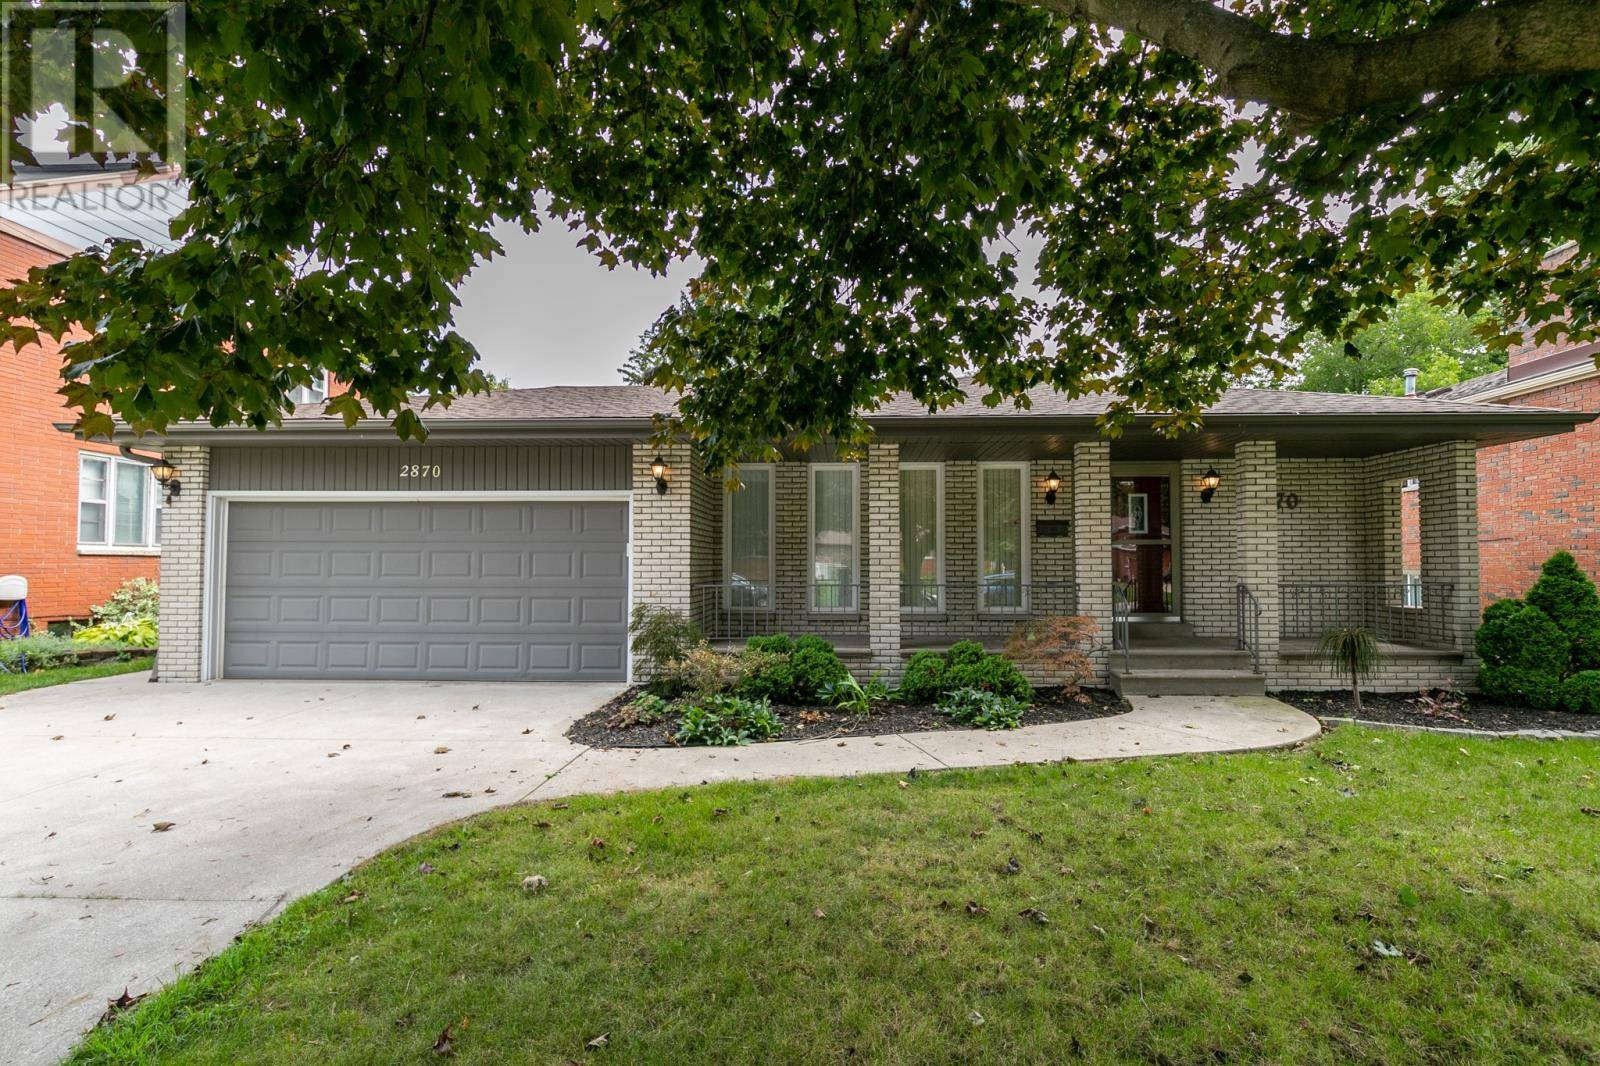 House for sale at 2870 Mckay Ave Windsor Ontario - MLS: 19025551